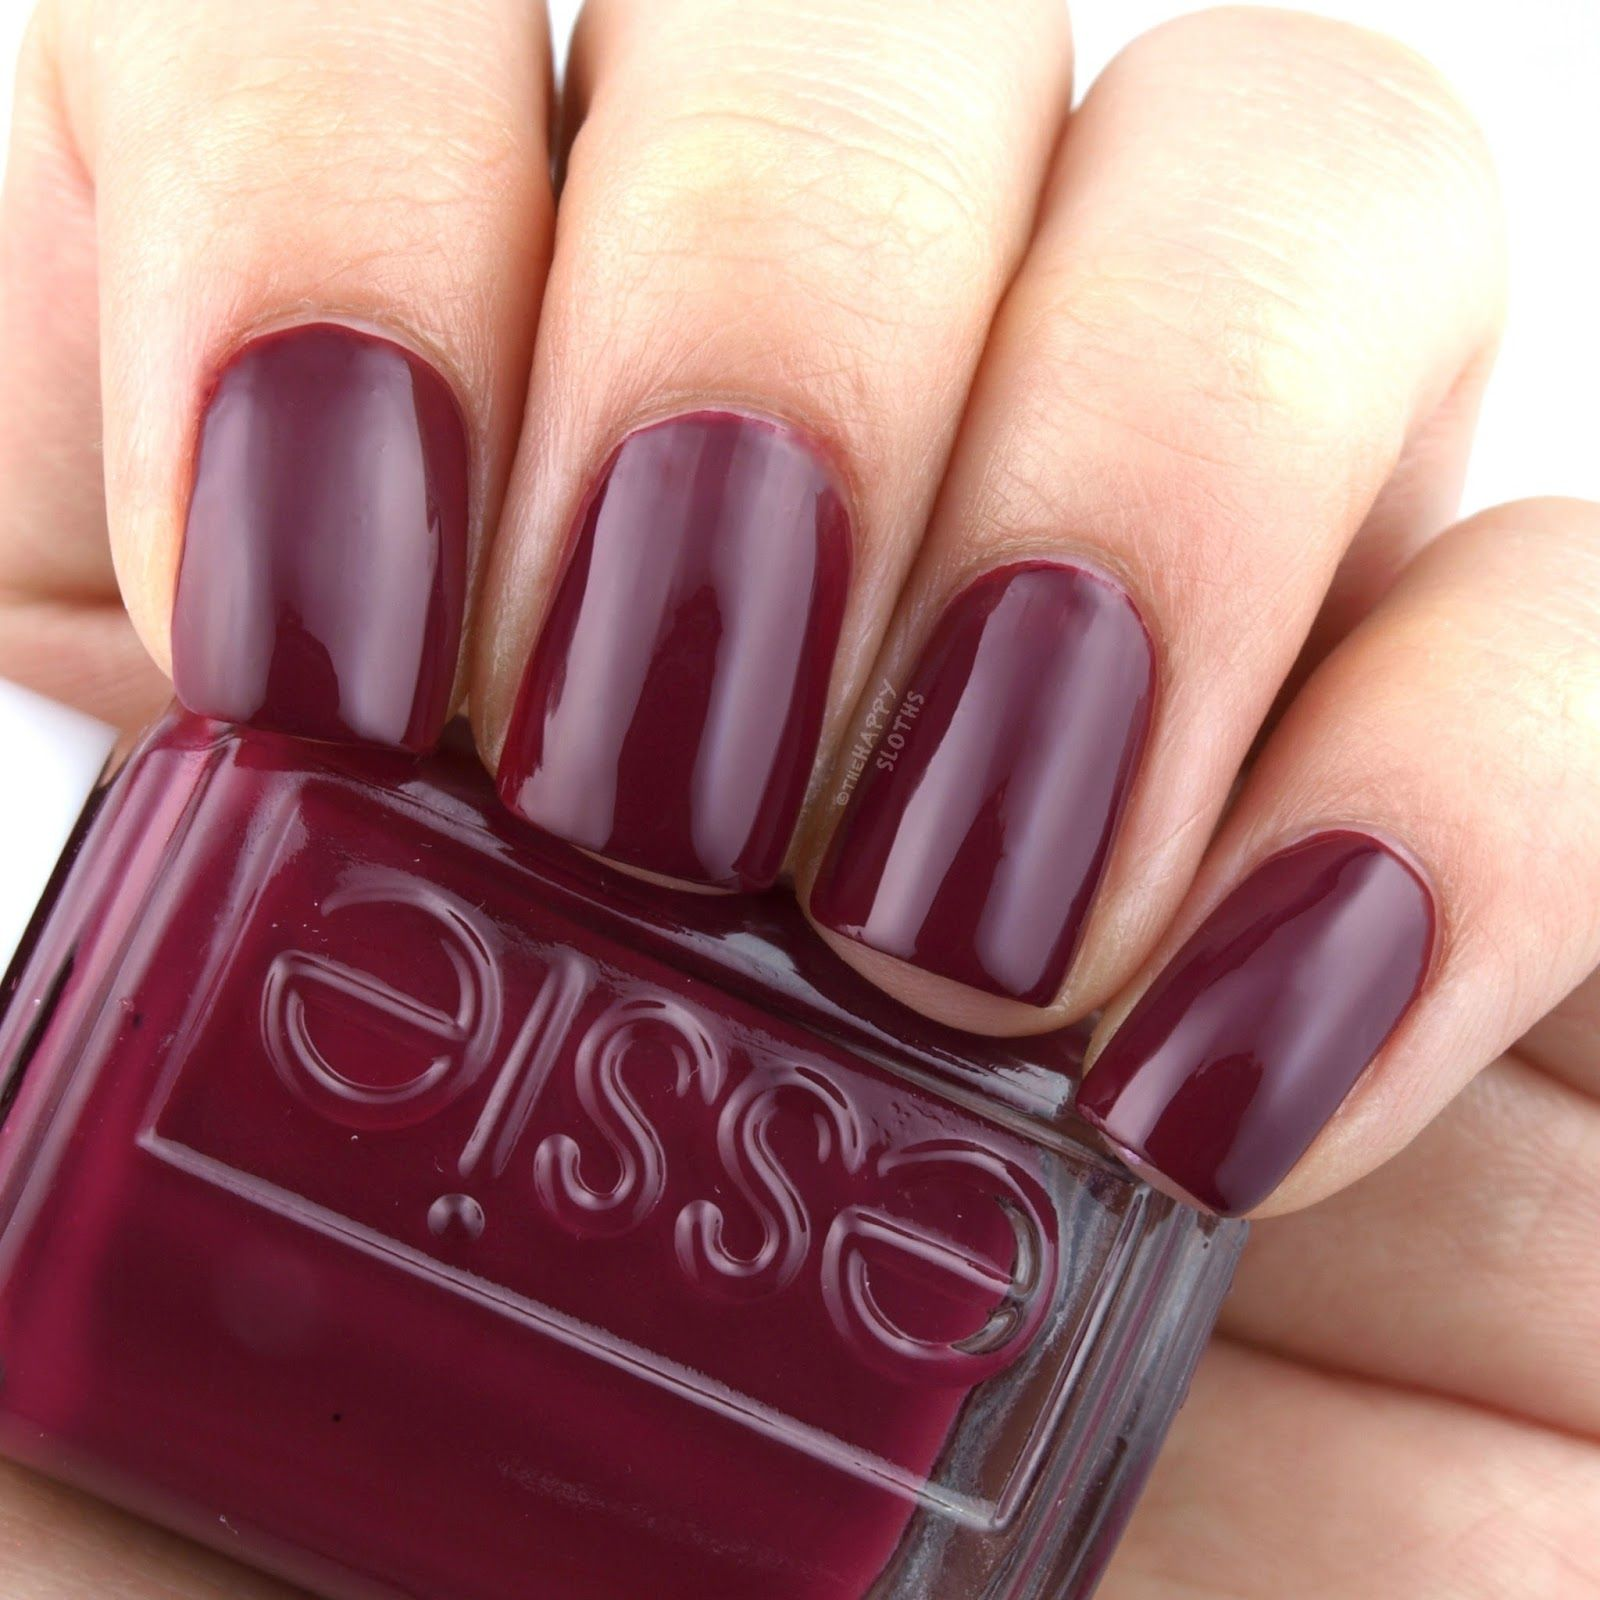 Essie Fall Nail Colors: '90s Inspired Nail Colors